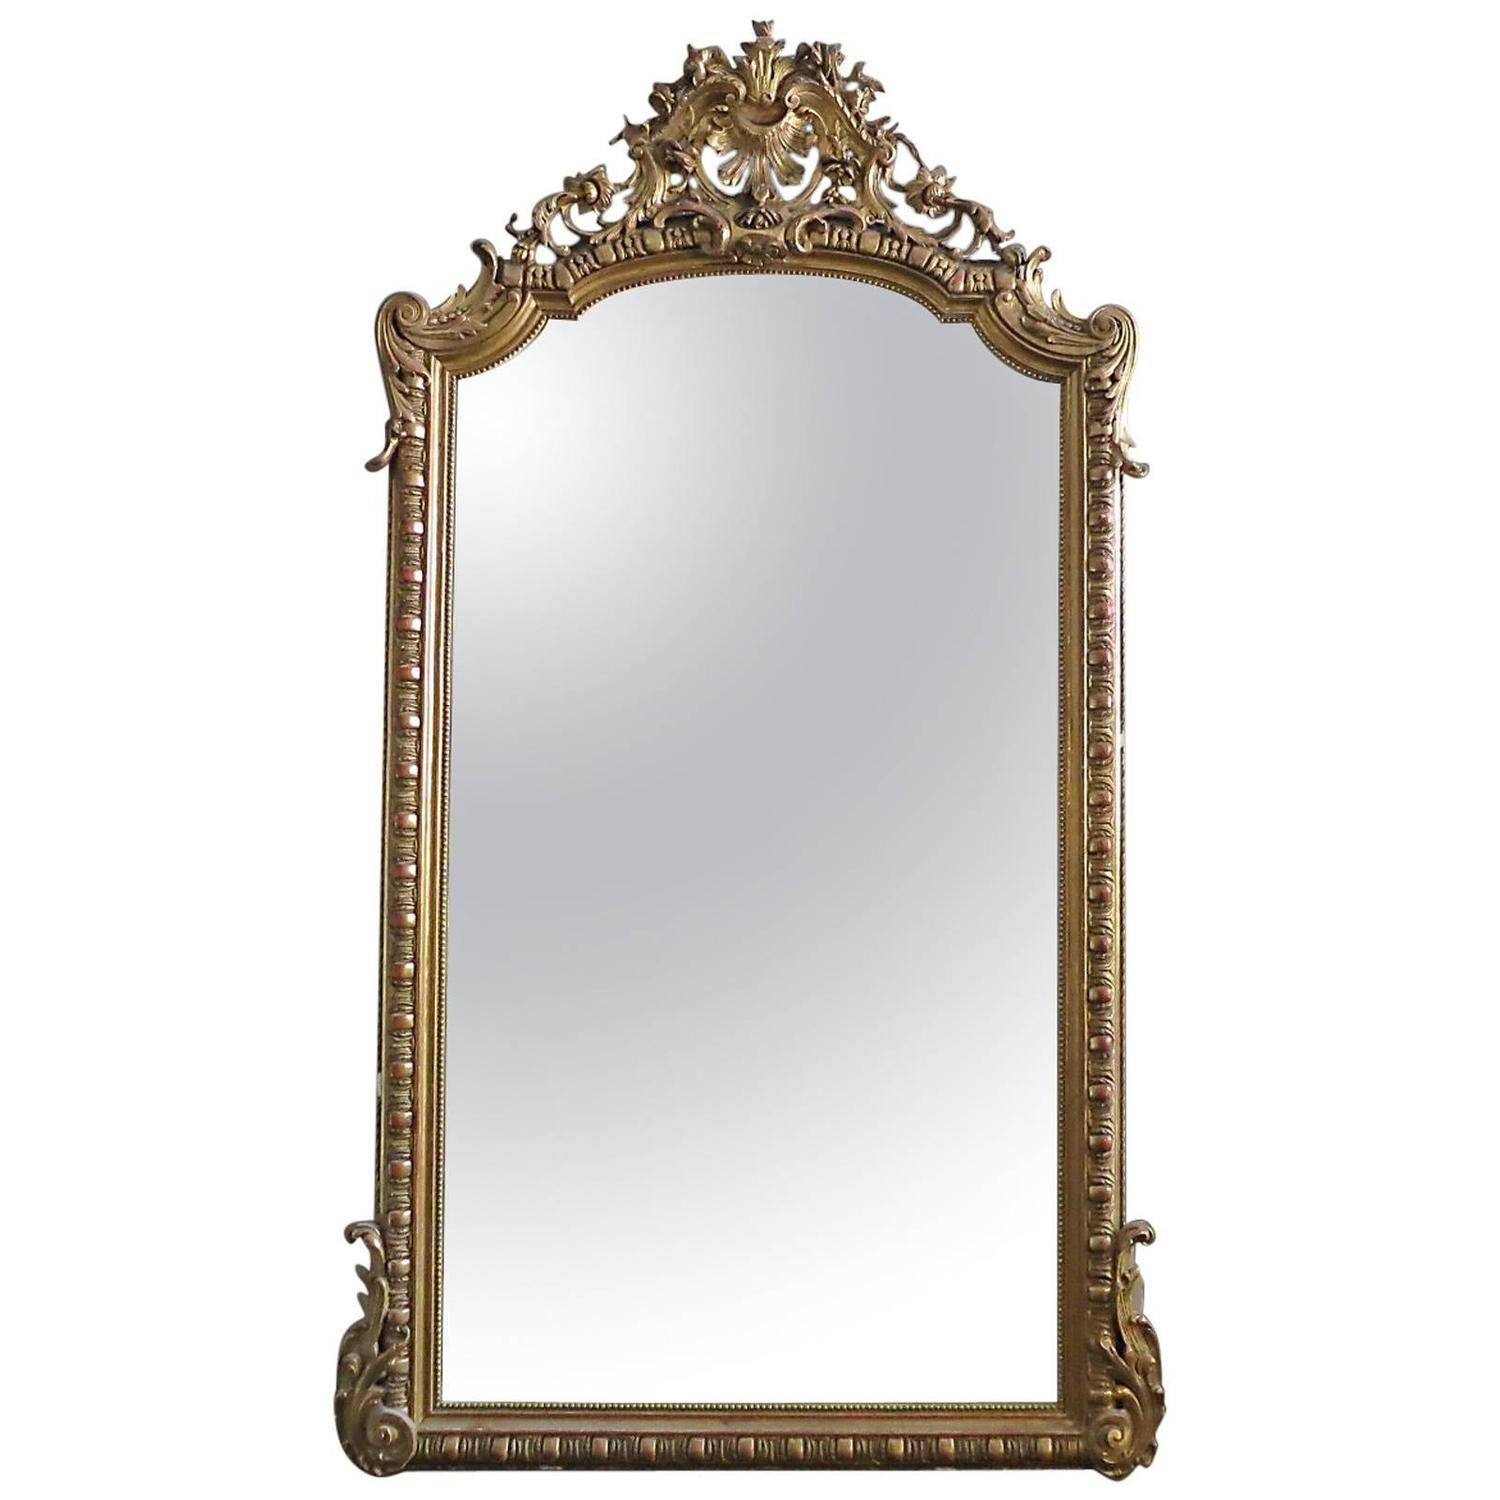 Large Antique French Gold Gilt Mirror At 1Stdibs With Regard To Large Antique Gold Mirrors (View 17 of 25)